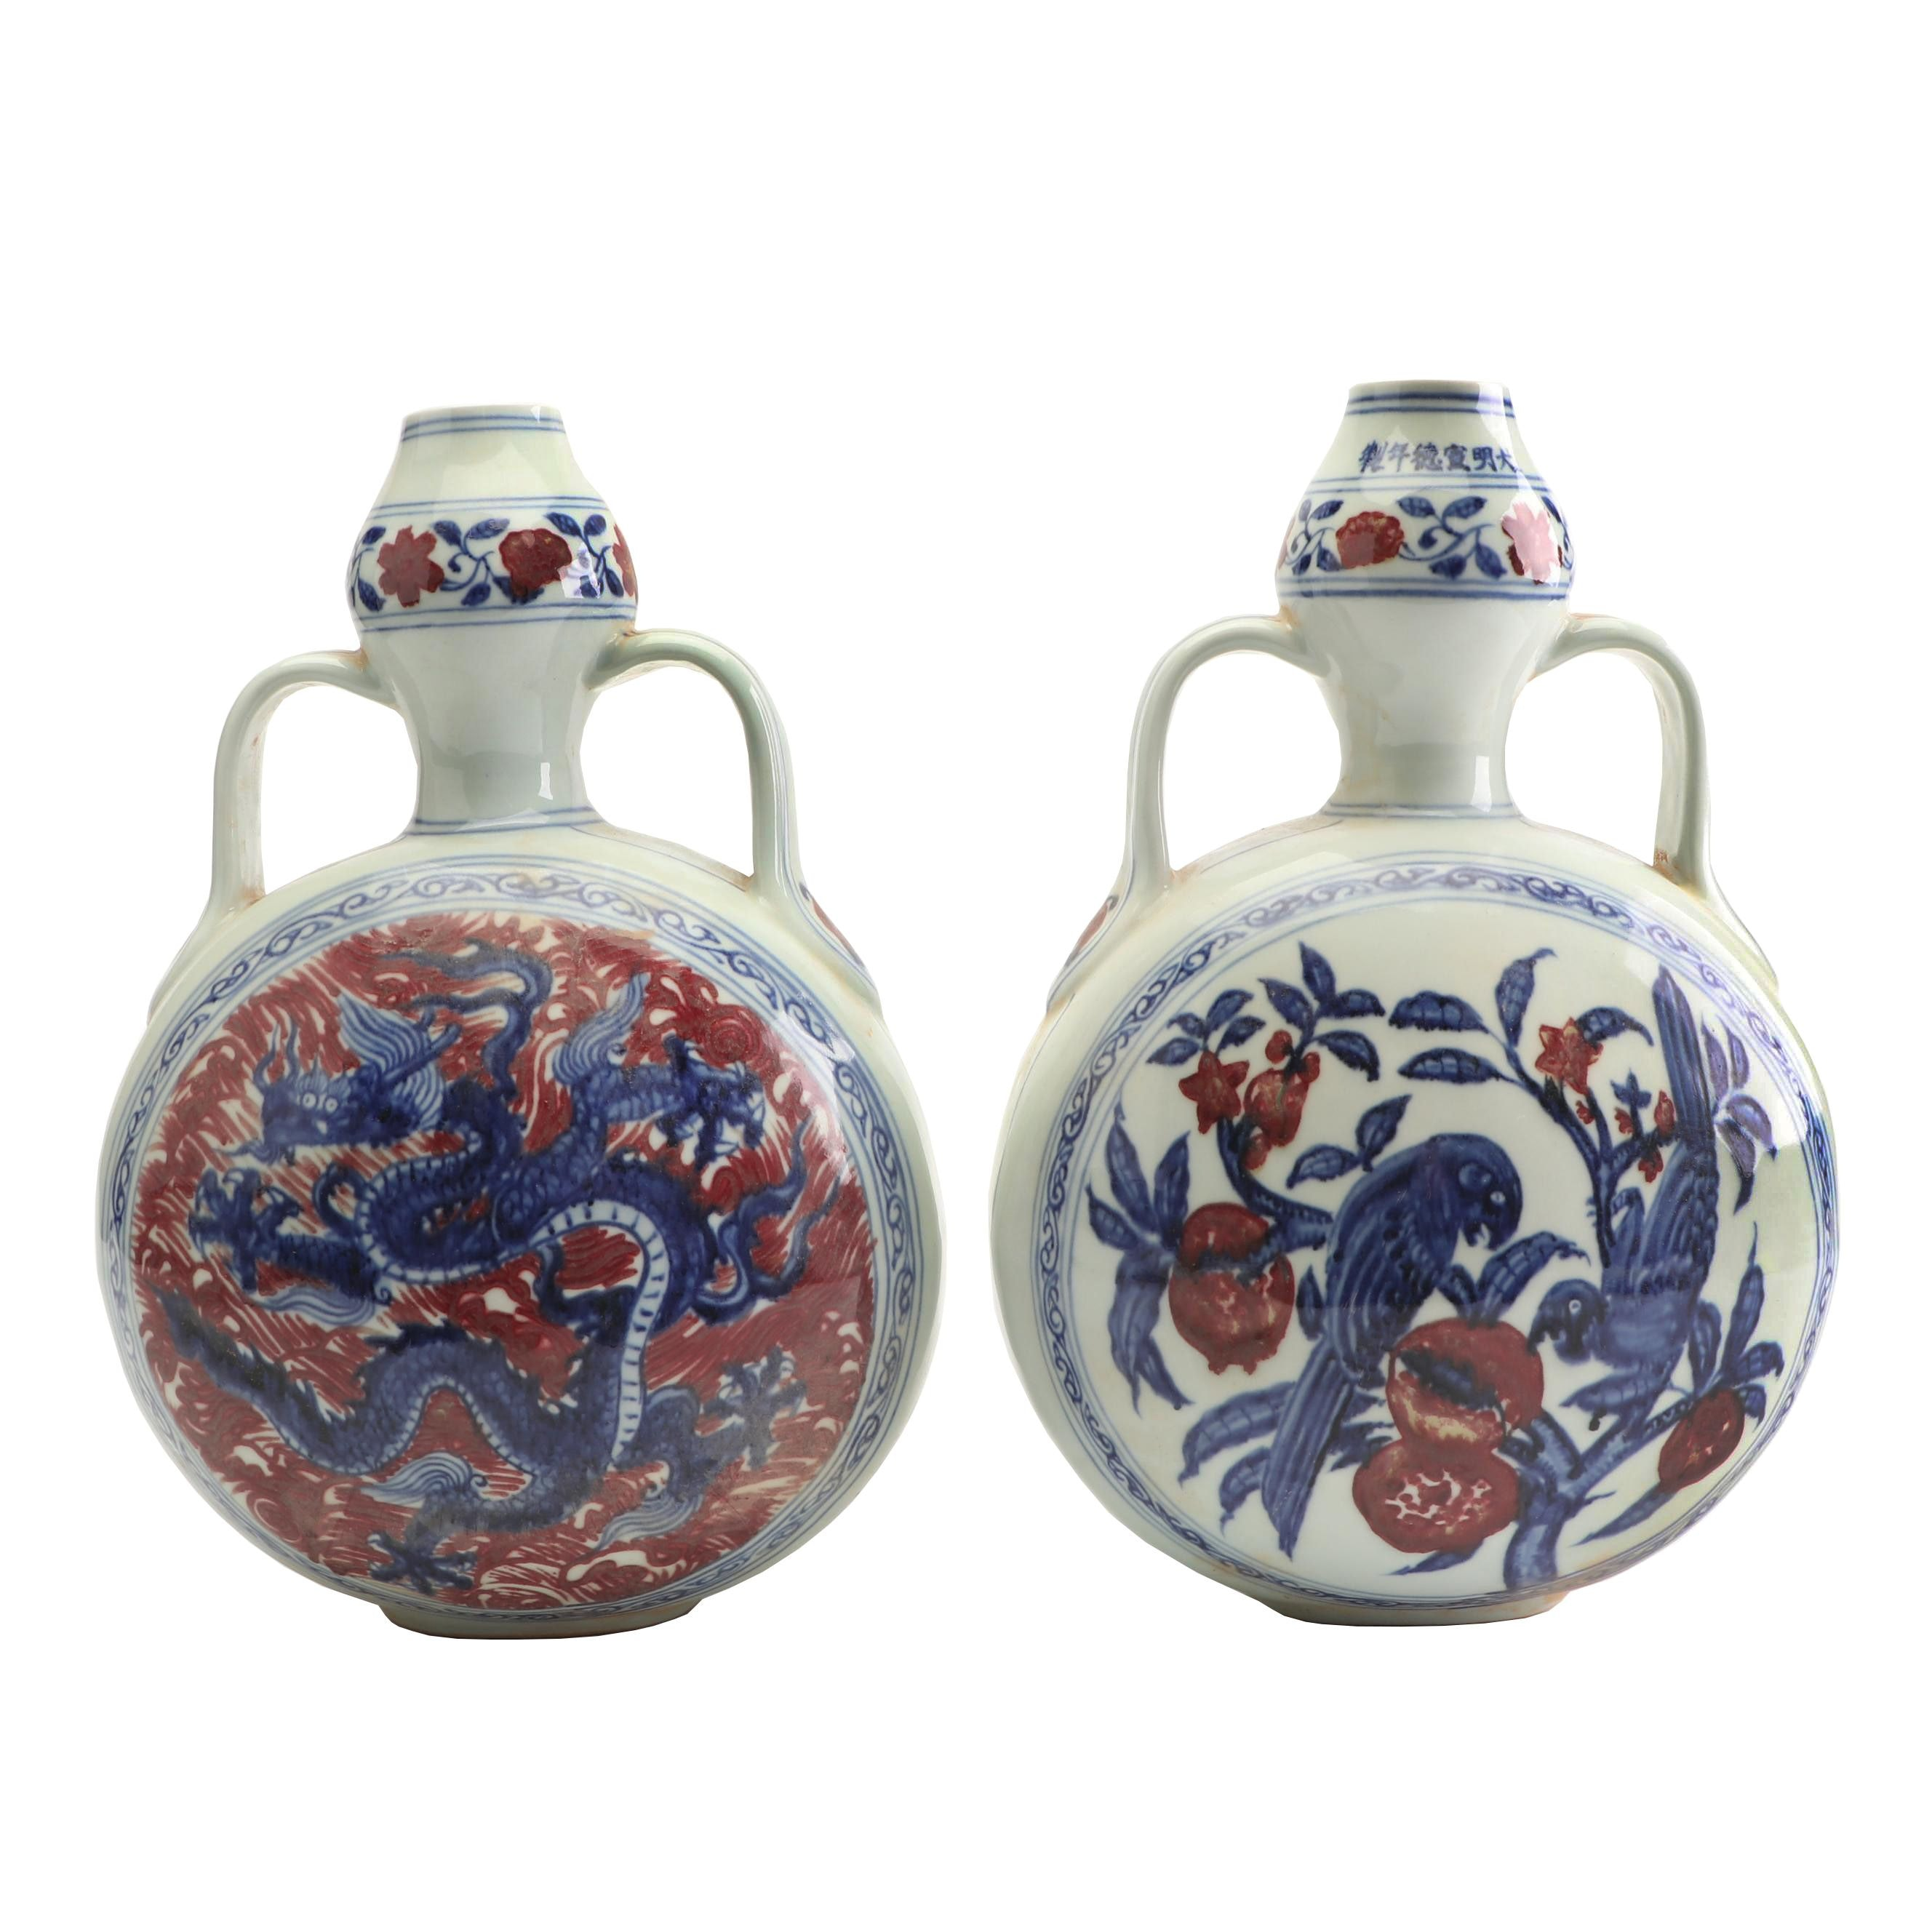 Chinese Ceramic Moon Flasks with Dragon and Birds and Pomegranates Motifs